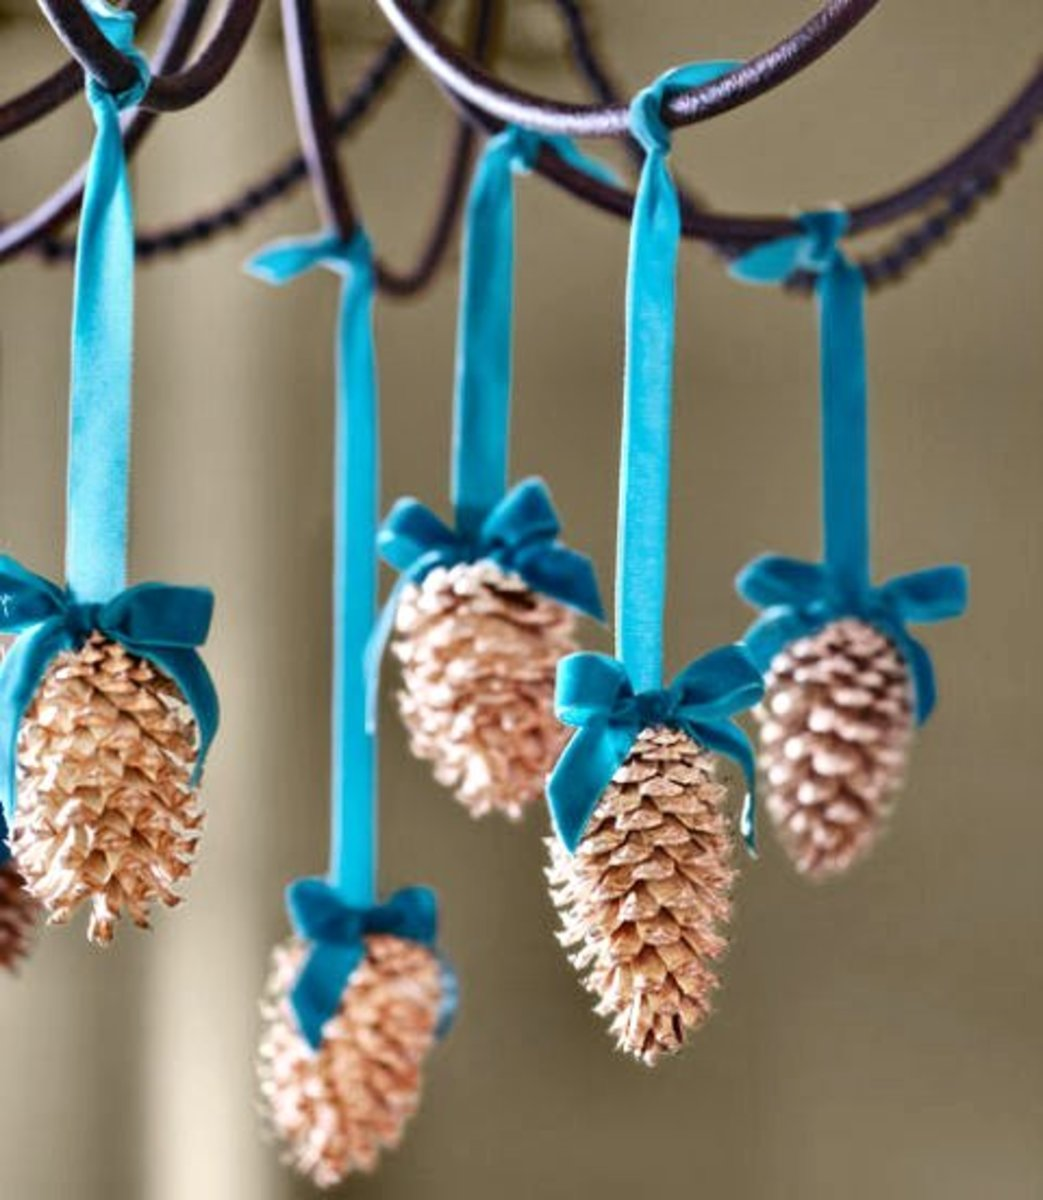 Bring a little nature indoors with these DIY bleached pine-cone ornaments.